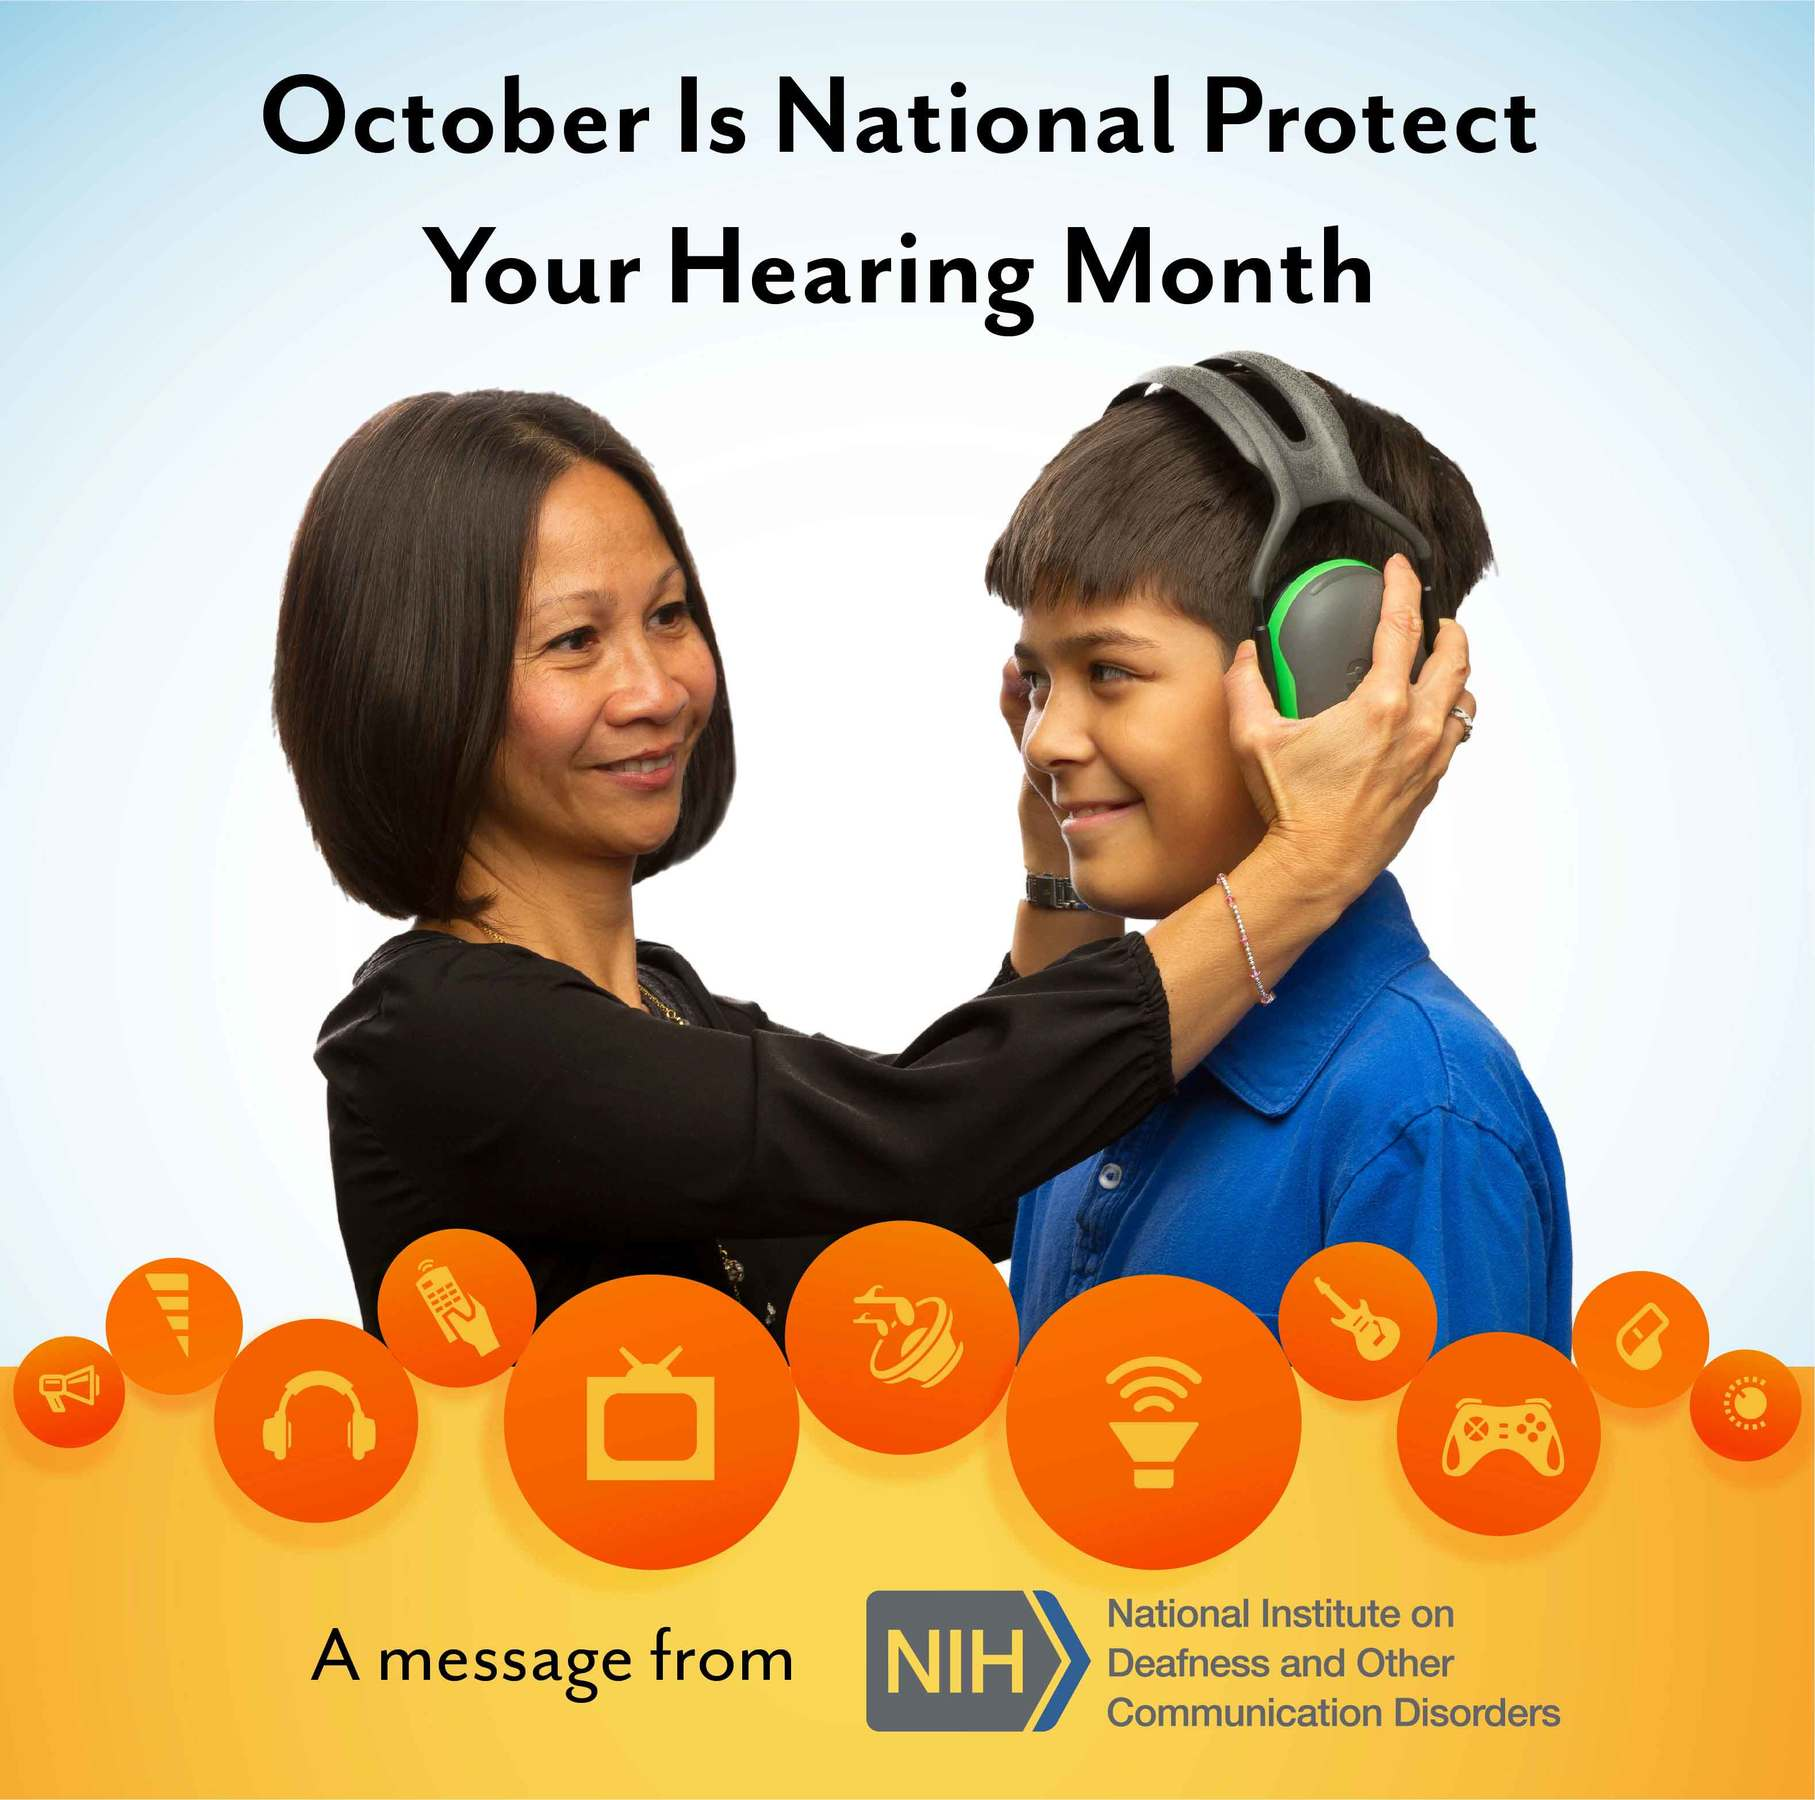 A woman places protective earmuffs on a preteen boy. Text above them reads: October is National Protect Your Hearing Month.